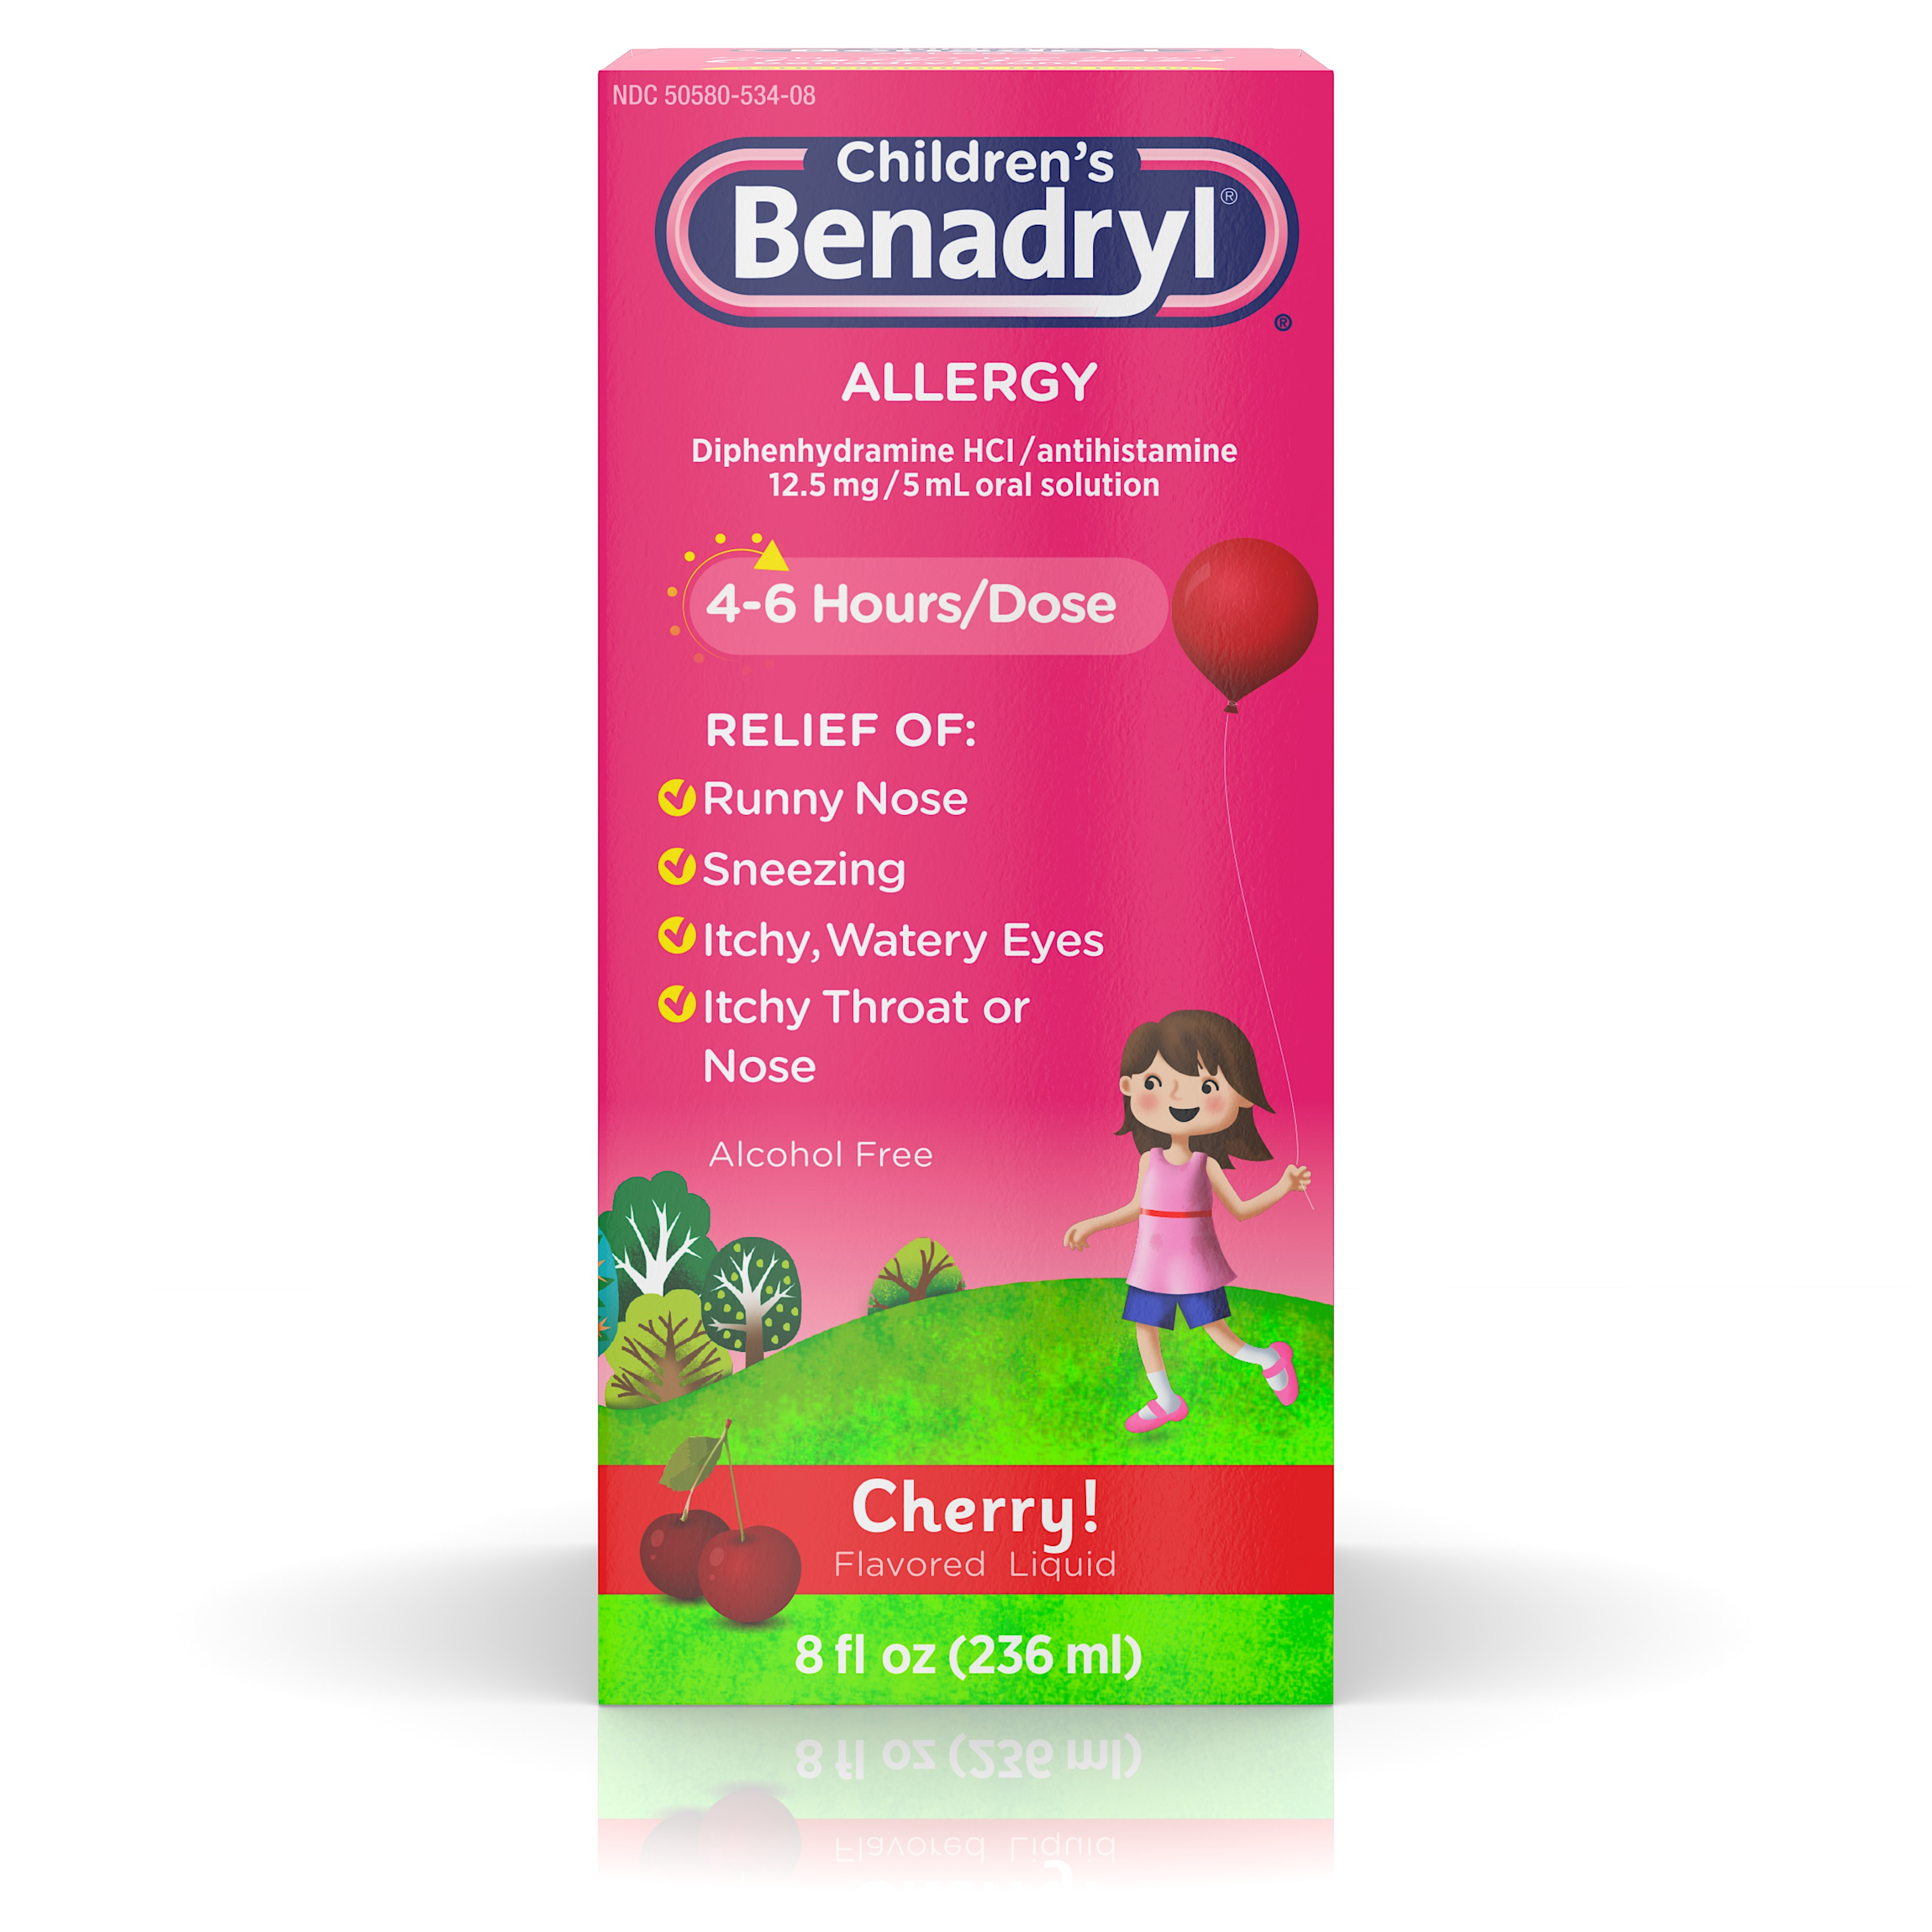 Children's Benadryl Antihistamine Allergy Liquid, Cherry, 8 fl. oz